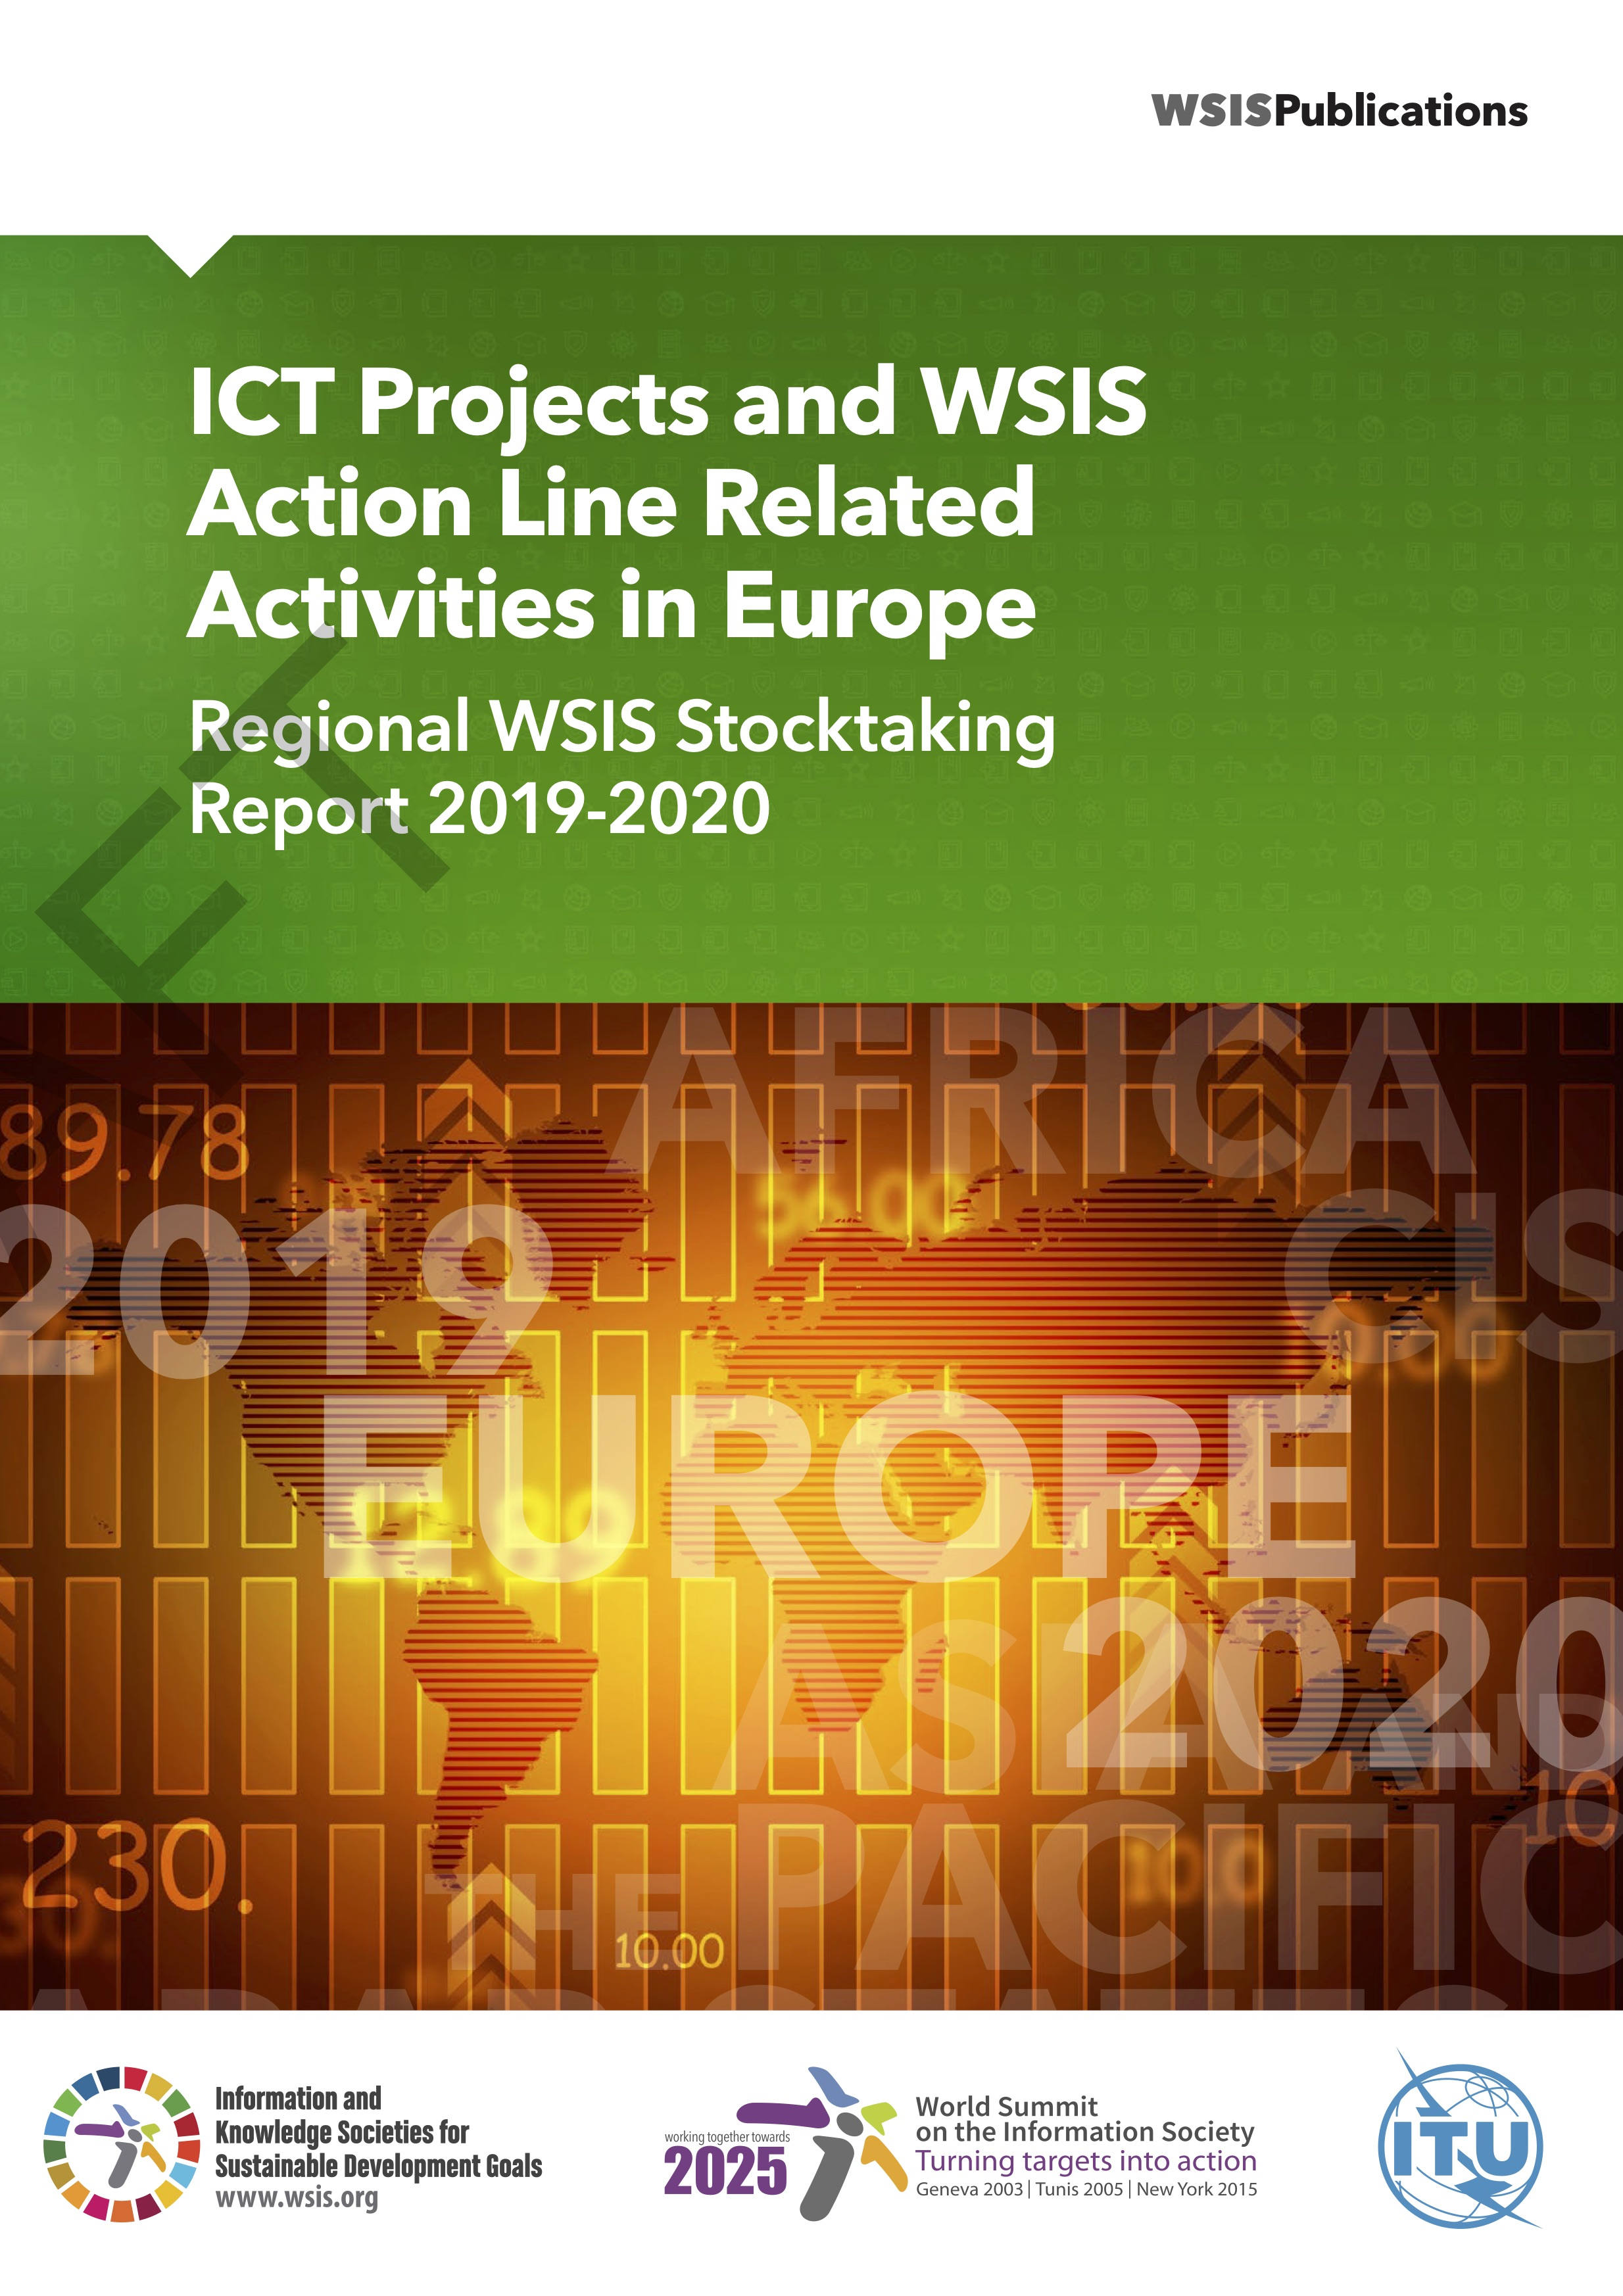 Regional WSIS Stocktaking Report 2019-2020 — Europe